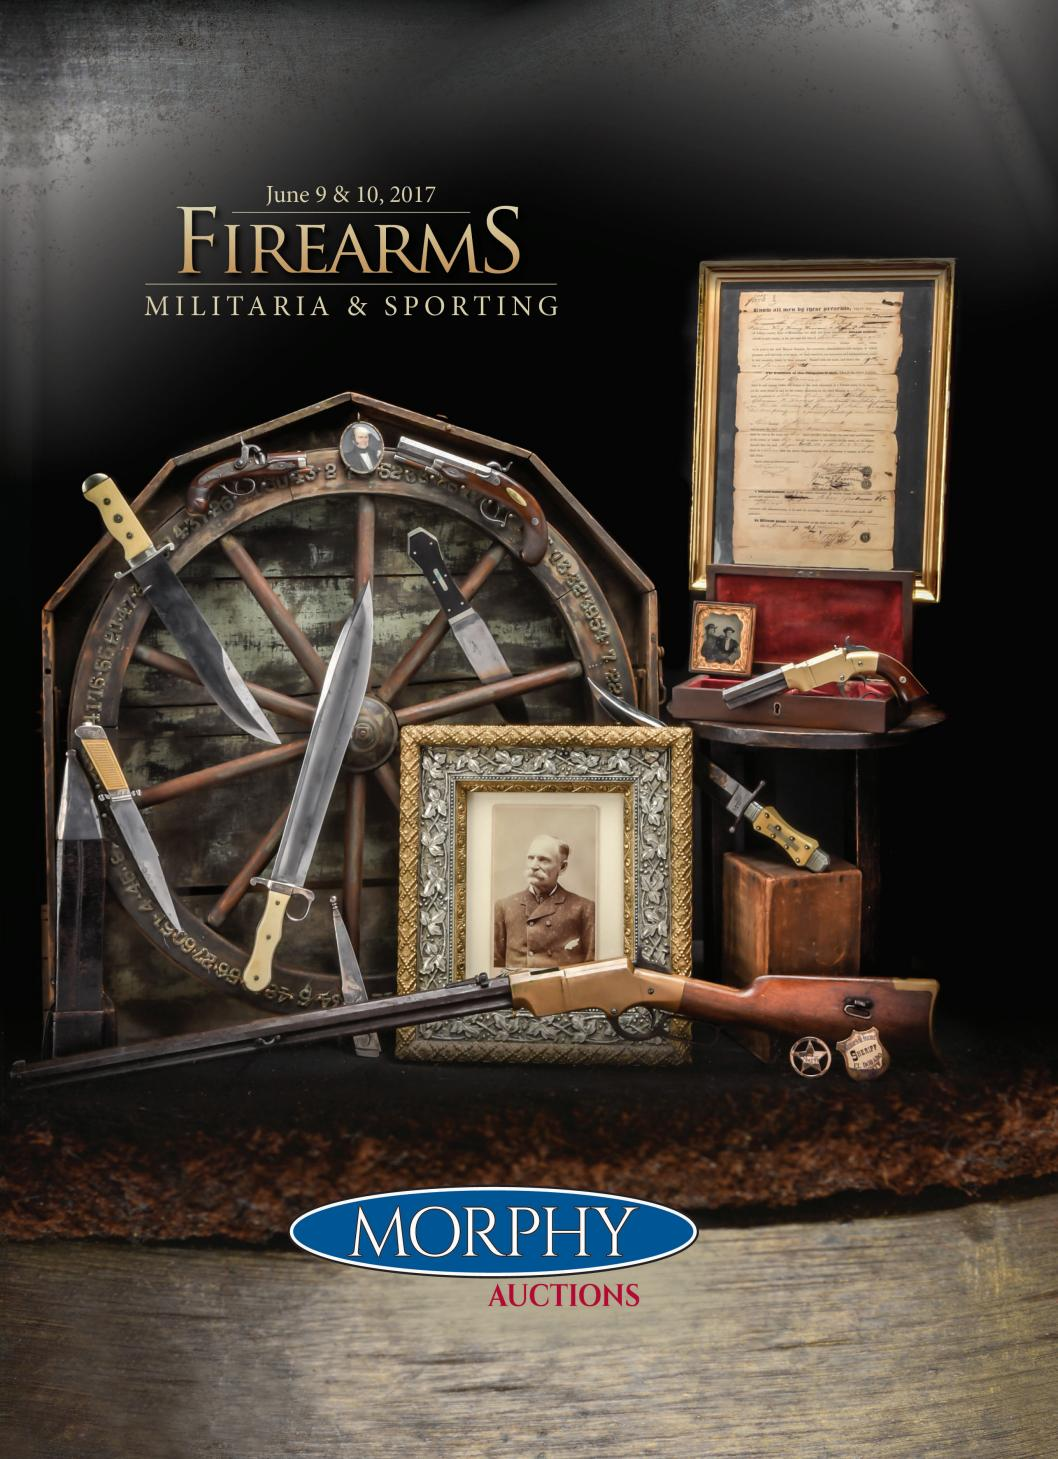 485fc4e510f 2017 June 9-10 Firearms by Morphy Auctions - issuu